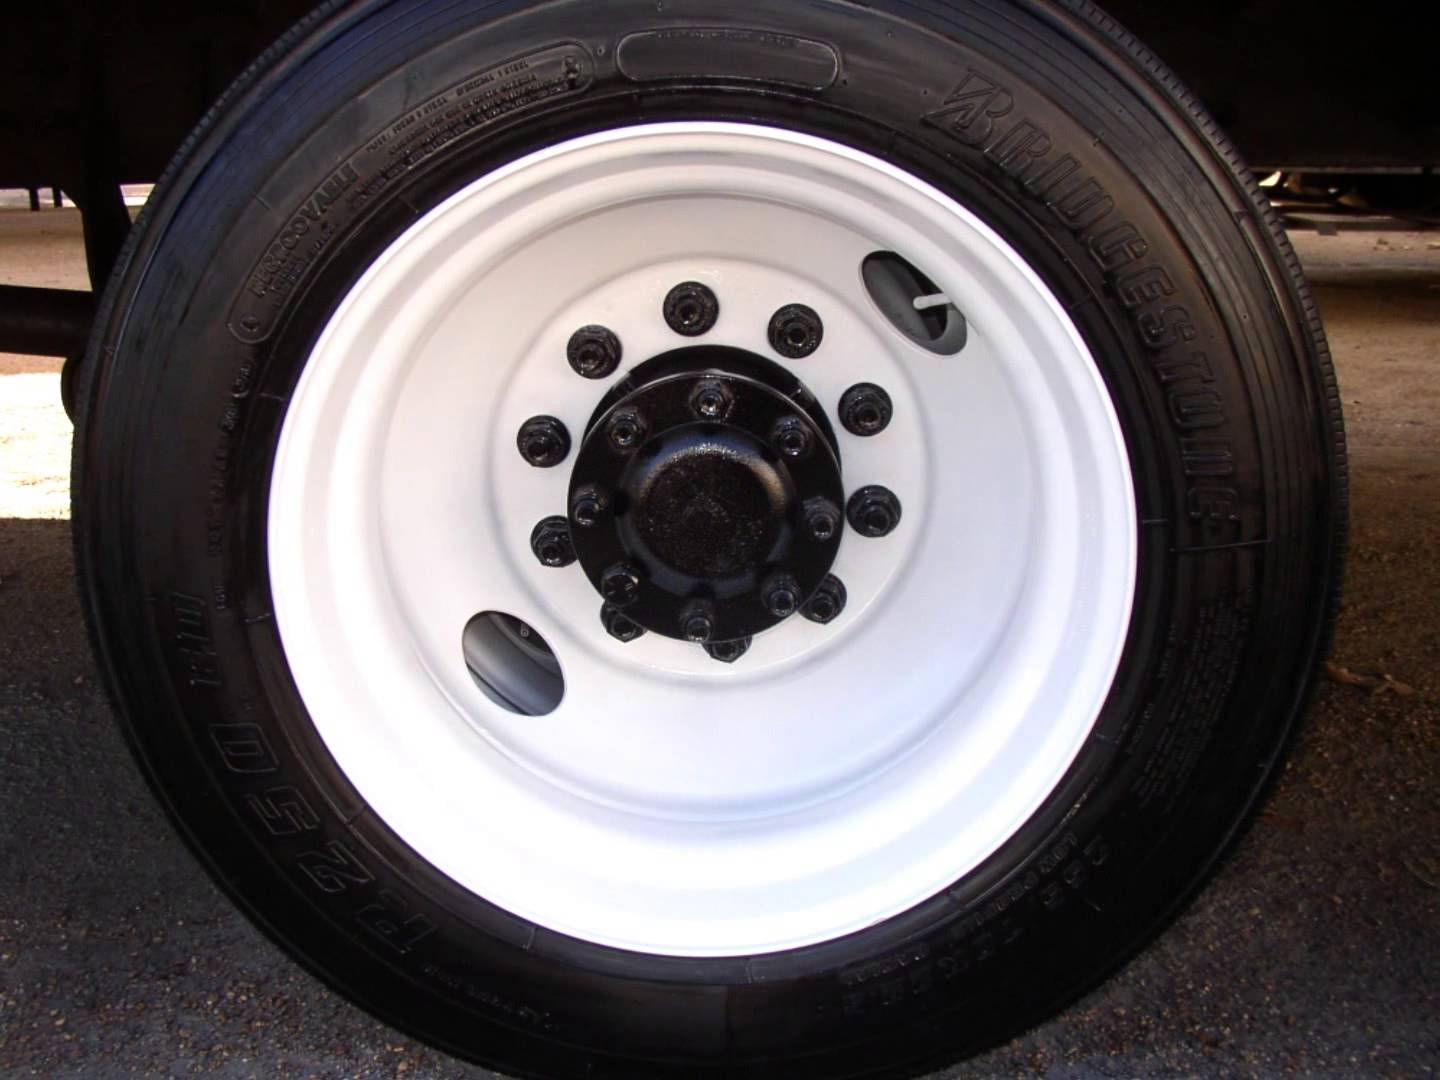 Painting Truck Bus & Trailer Wheels with Tire Mask